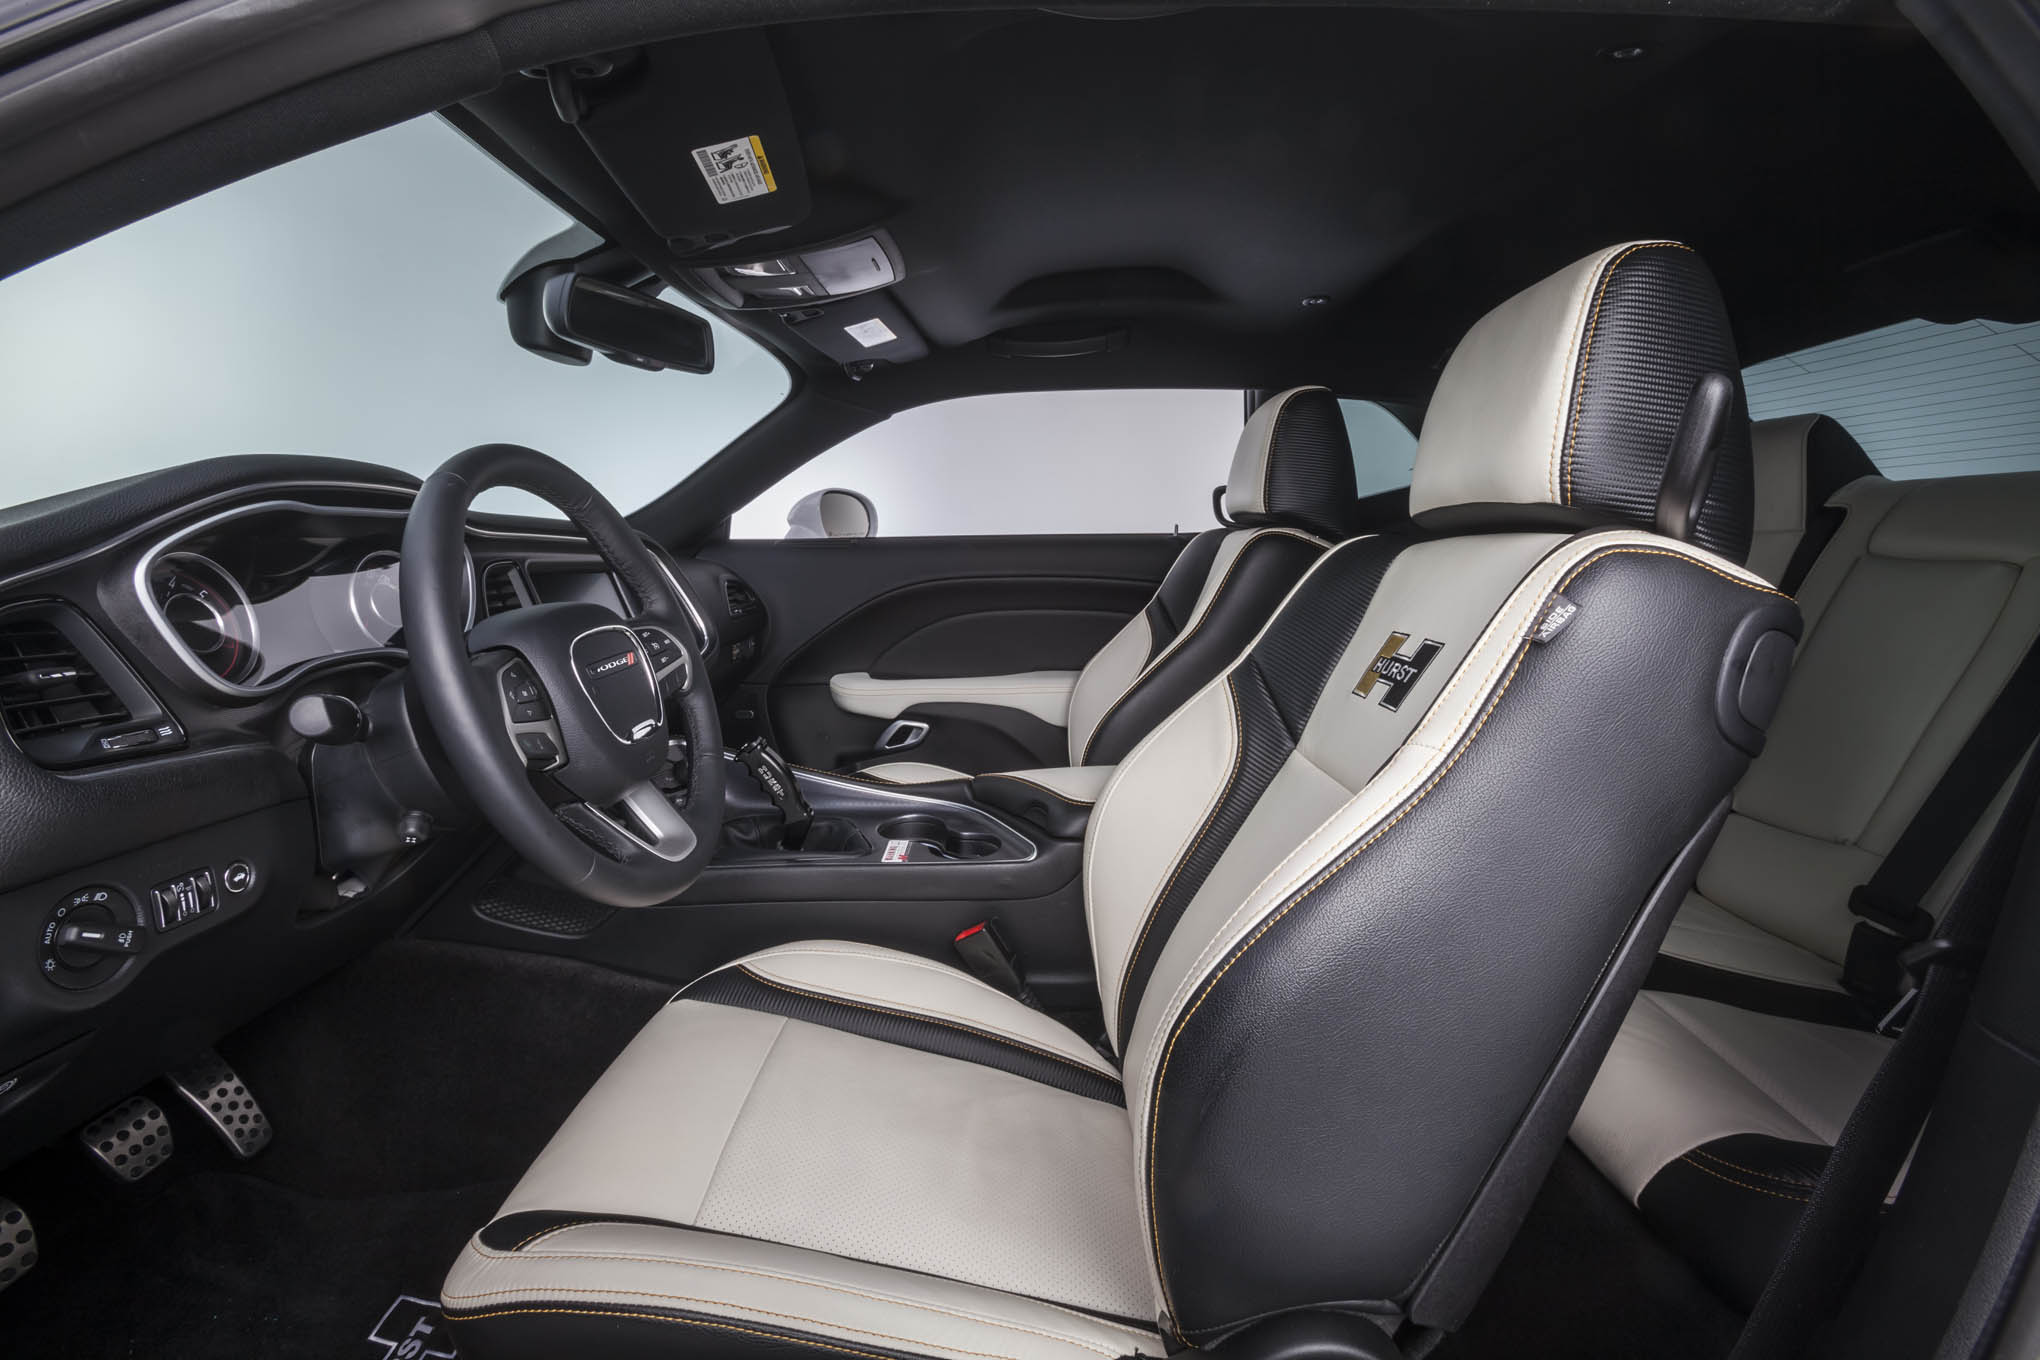 The new Challenger interior tops out as our favorite late-model muscle interior, bar none. It's the right balance of muscle and class, and the Hurst-edition leather seating in the GSS package just makes it even more inviting.